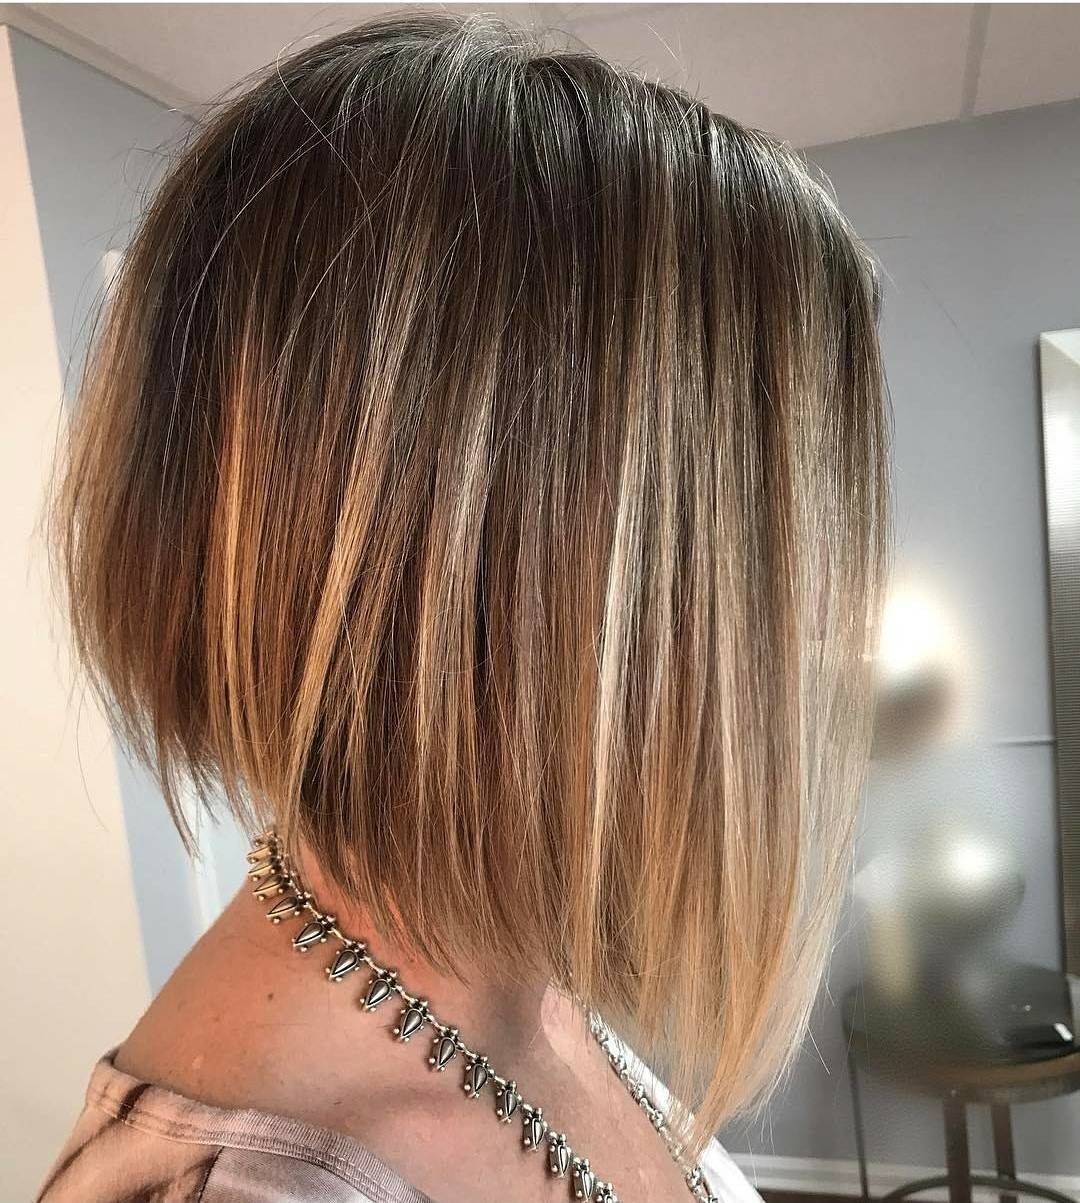 Short Haircut For Thick Hair Ideas Amp Color Options 2018